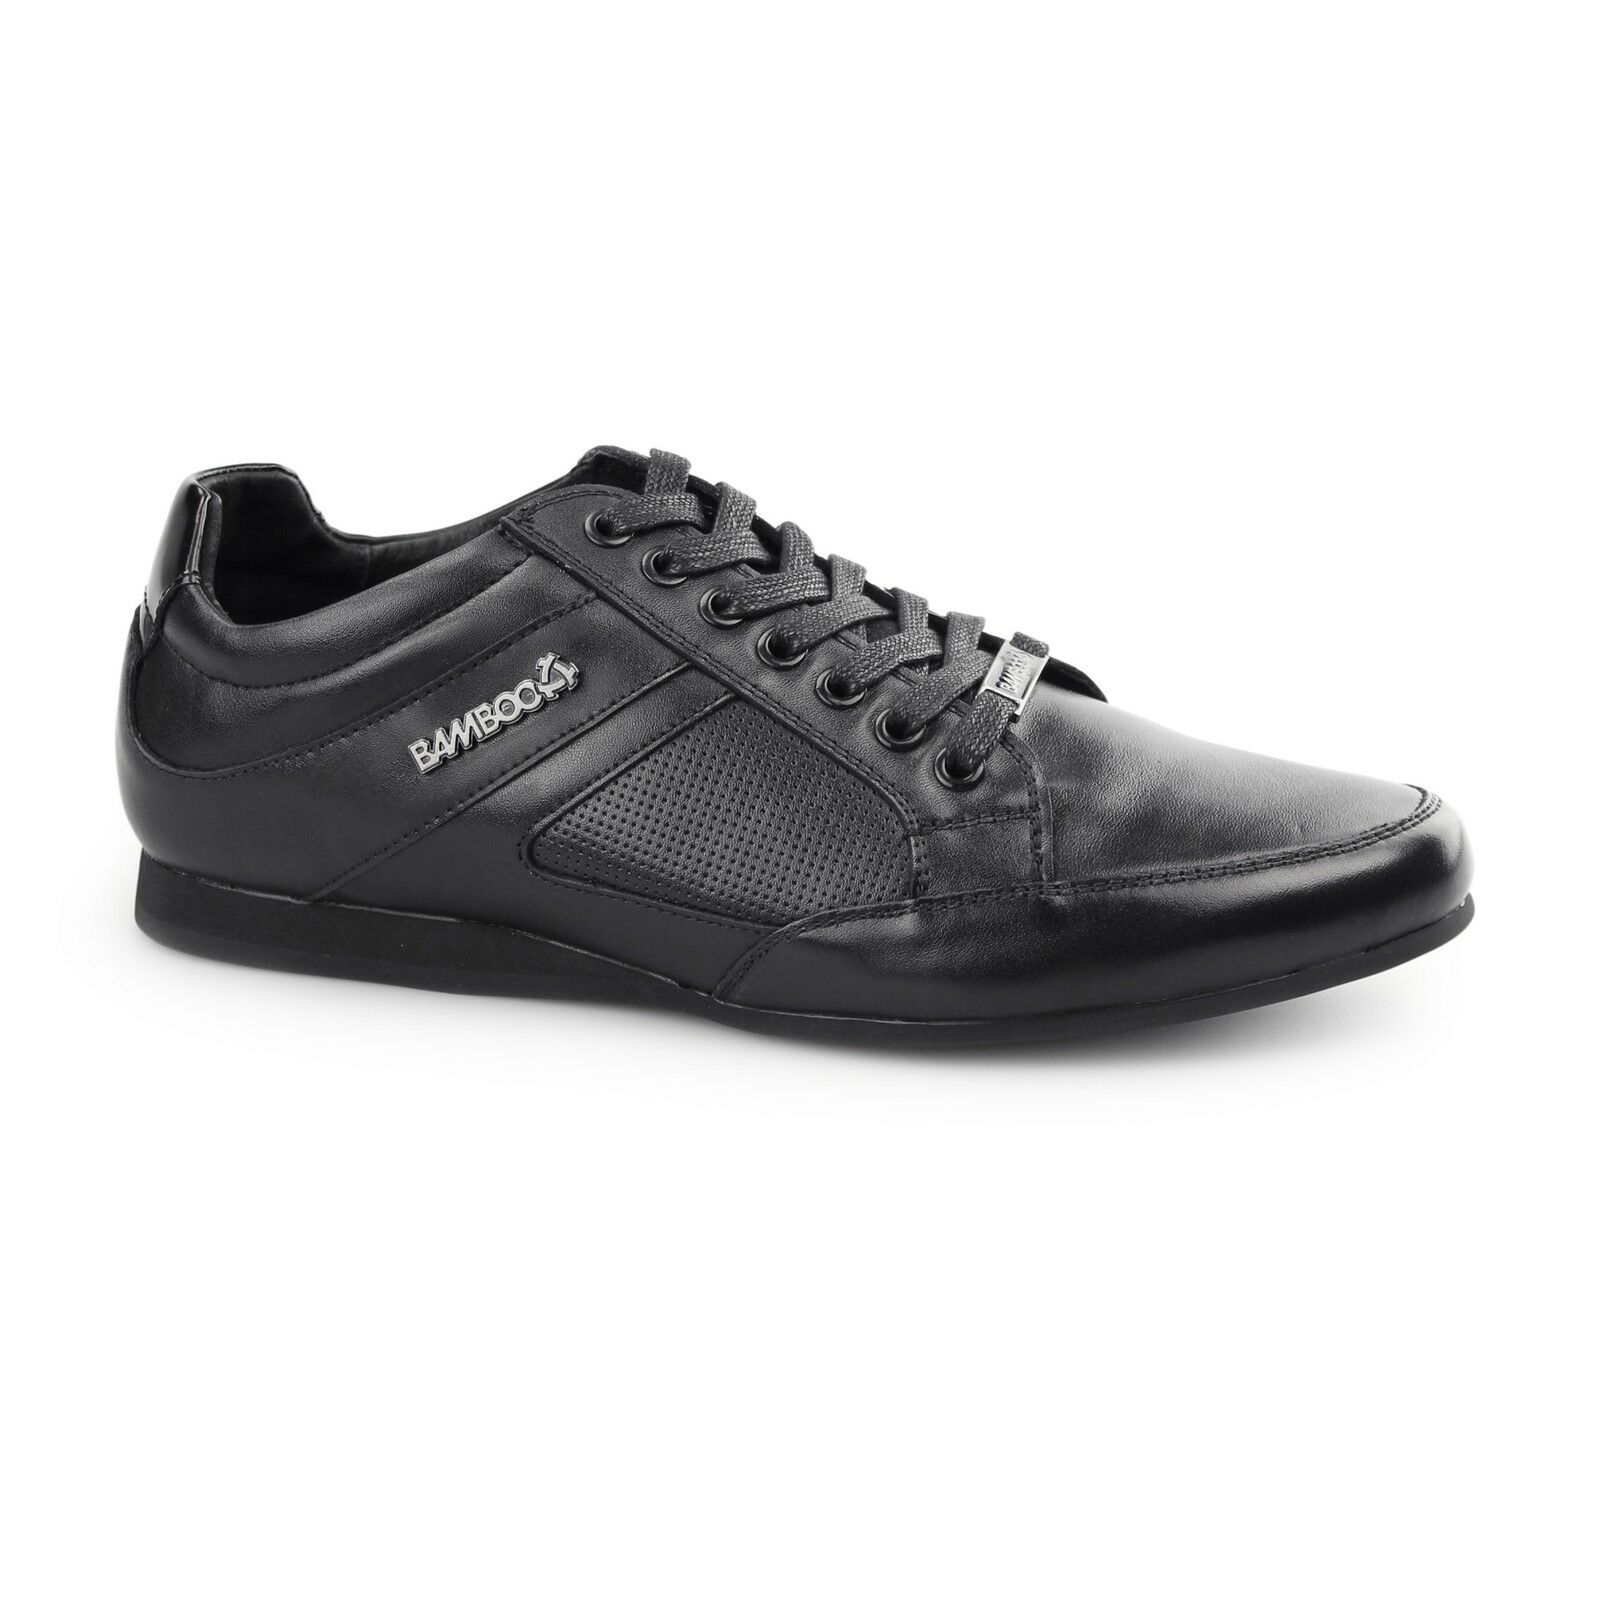 BambooA TRENTO Mens Shine Leather Lace Up Casual Comfort Trainers shoes Black